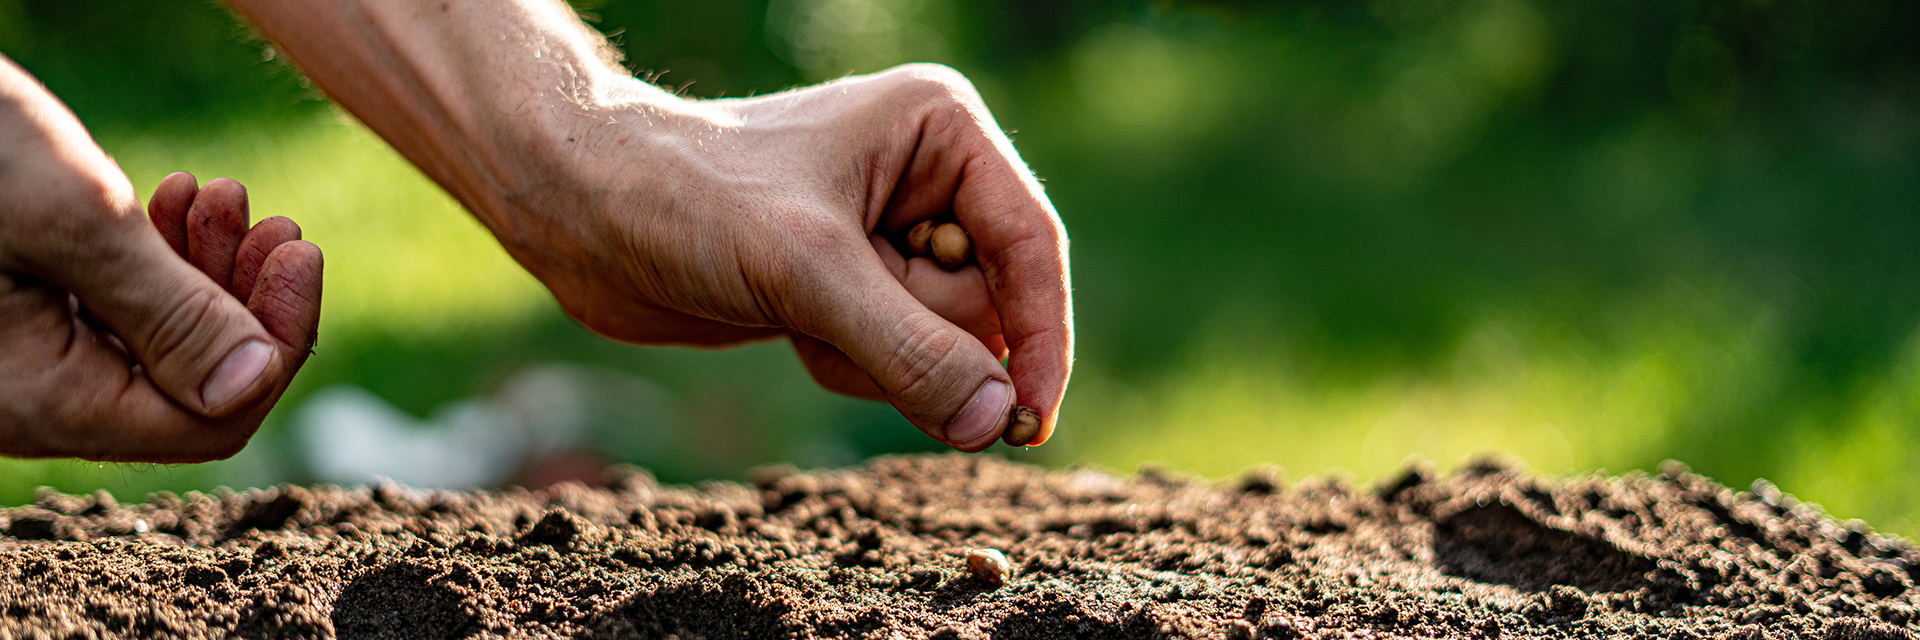 Hand-Planting-Seed-in-Dirt-Auburn-Soil-Water-Land-Use-Major-Degree-Option